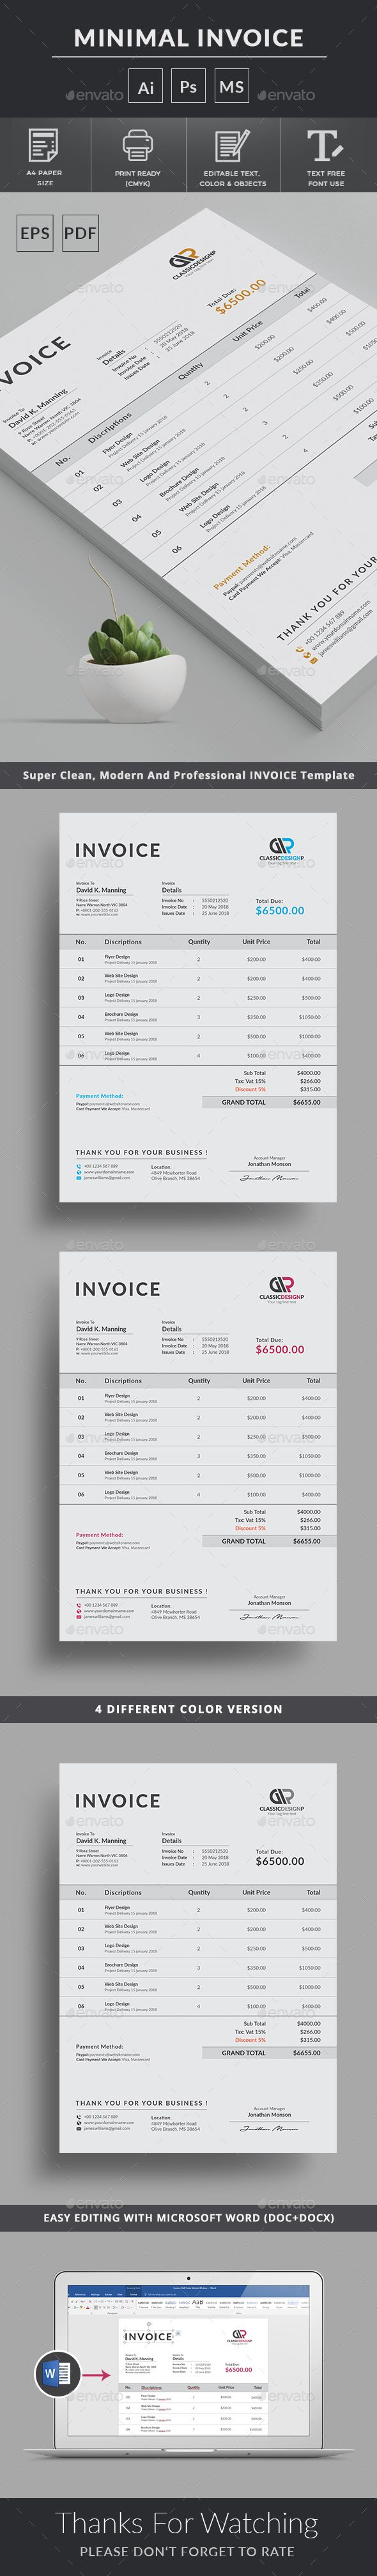 #Invoice Template Use this Clean Invoice for personal, corporate or company billing purpose. Excel Auto Calculation features are available. This Simple Invoice will help you to create your invoice very quick and easy. This Elegant Invoice Design will convey your brand identity as well as Professional Invoice look. Download here: https://graphicriver.net/item/invoice/19979306?ref=classicdesignp